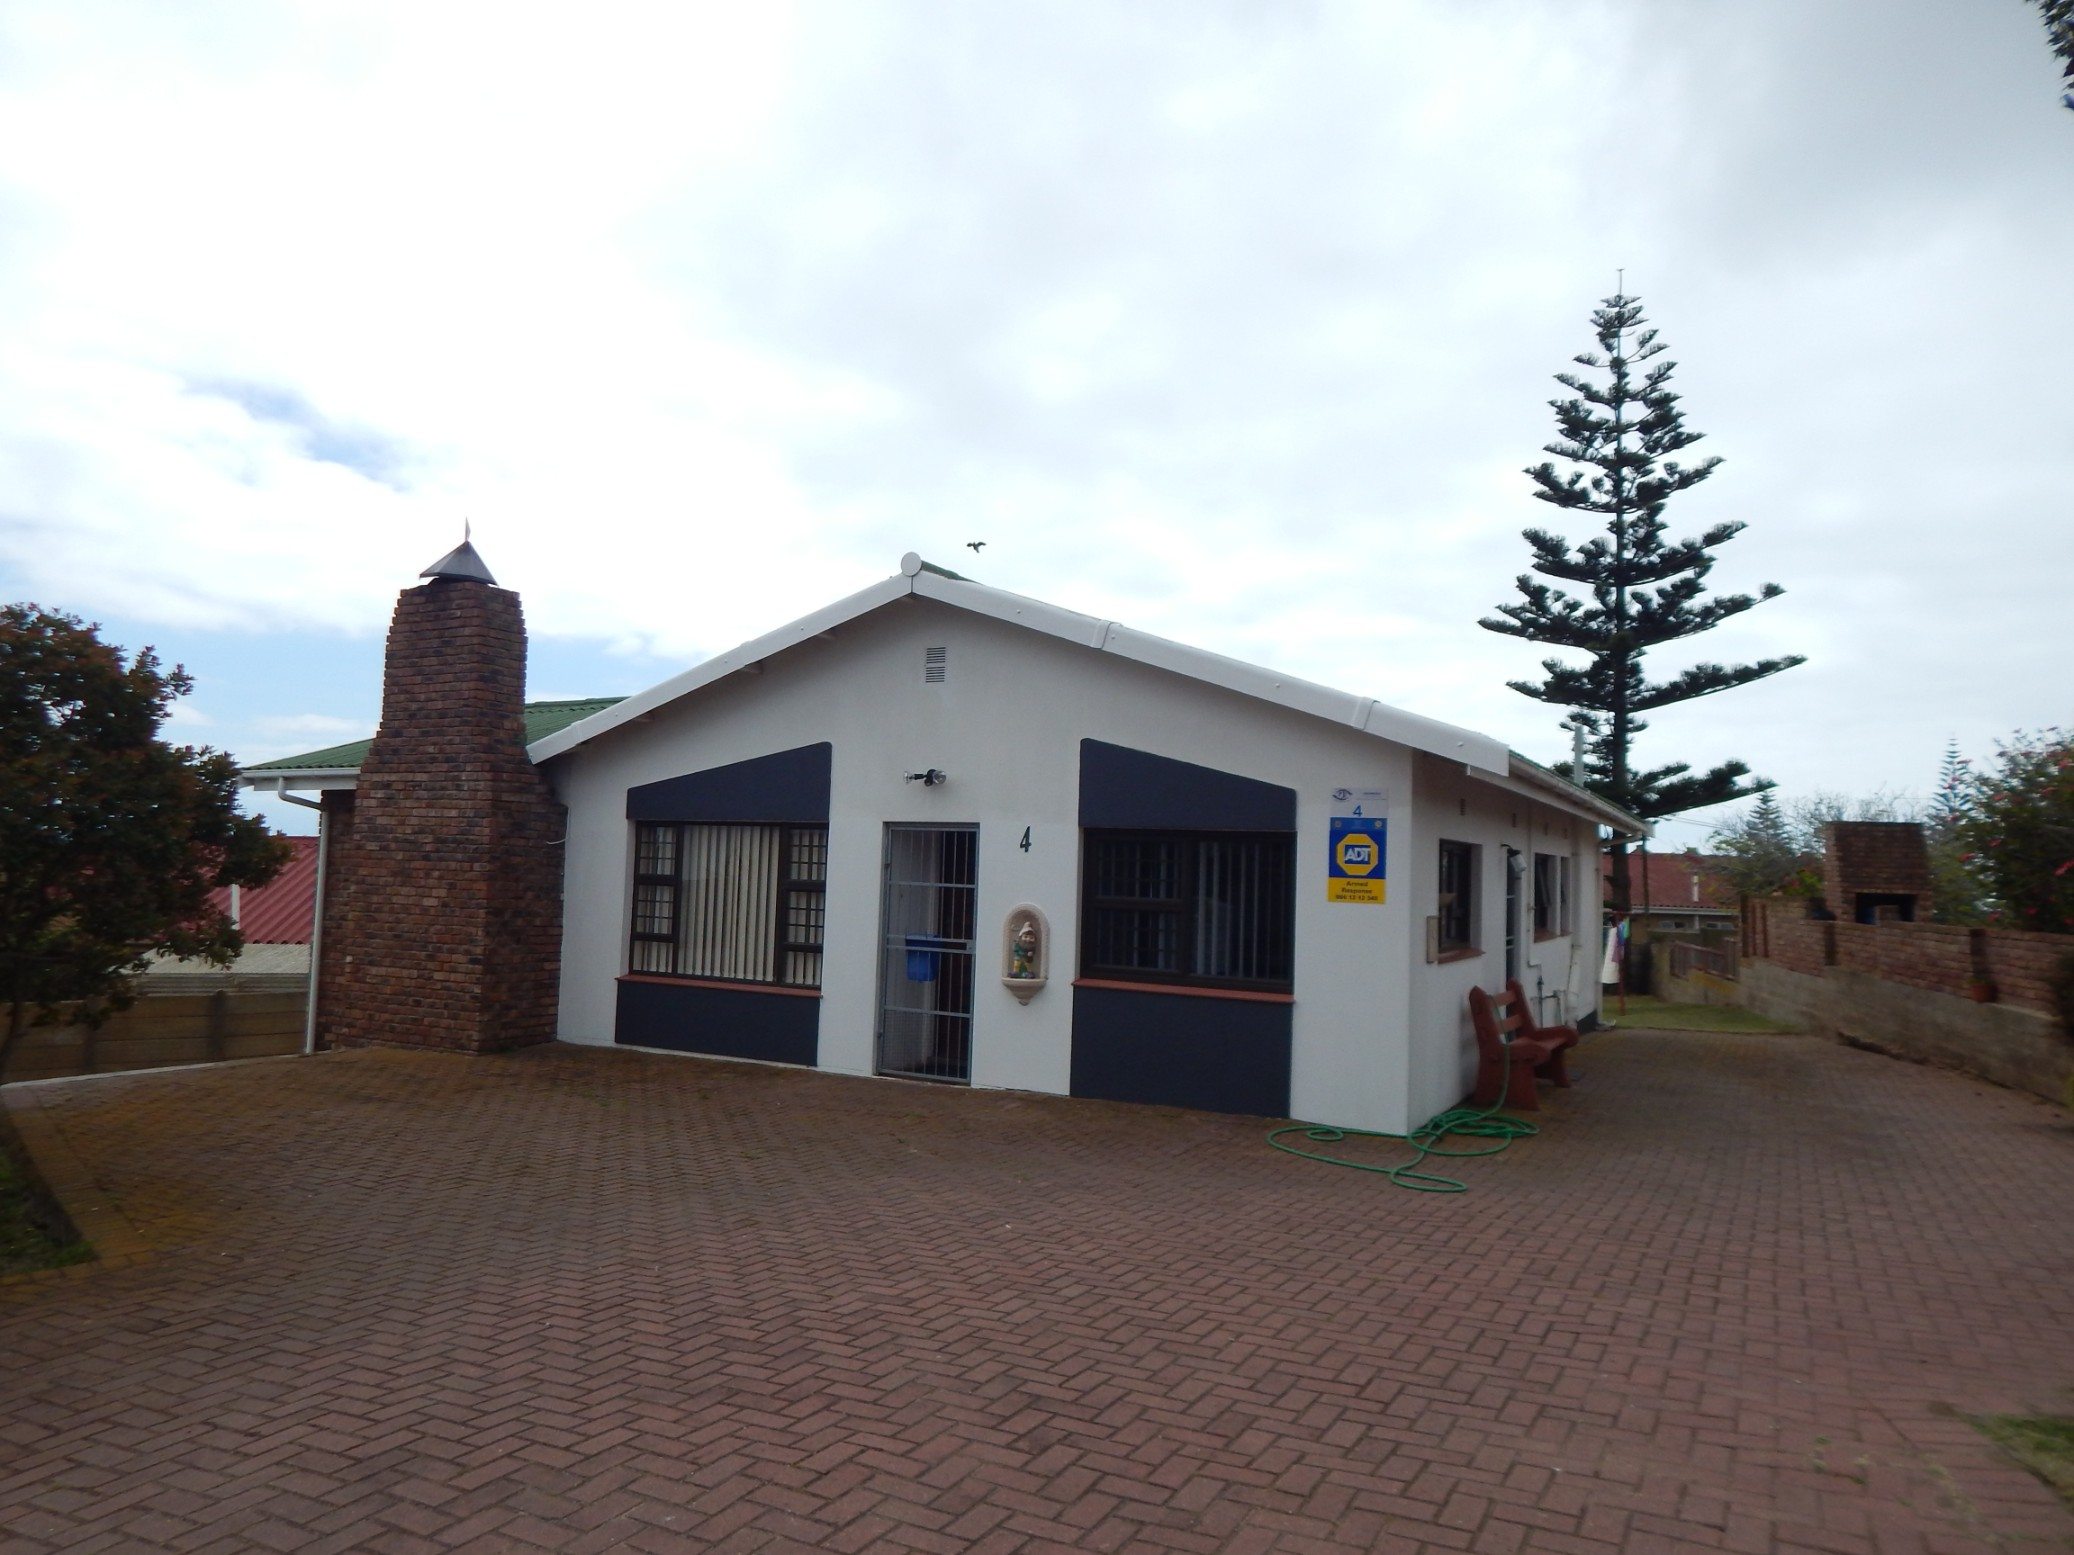 Heiderand Mossel bay 3 Bedroom 1.5 Bathroom 1 Garage